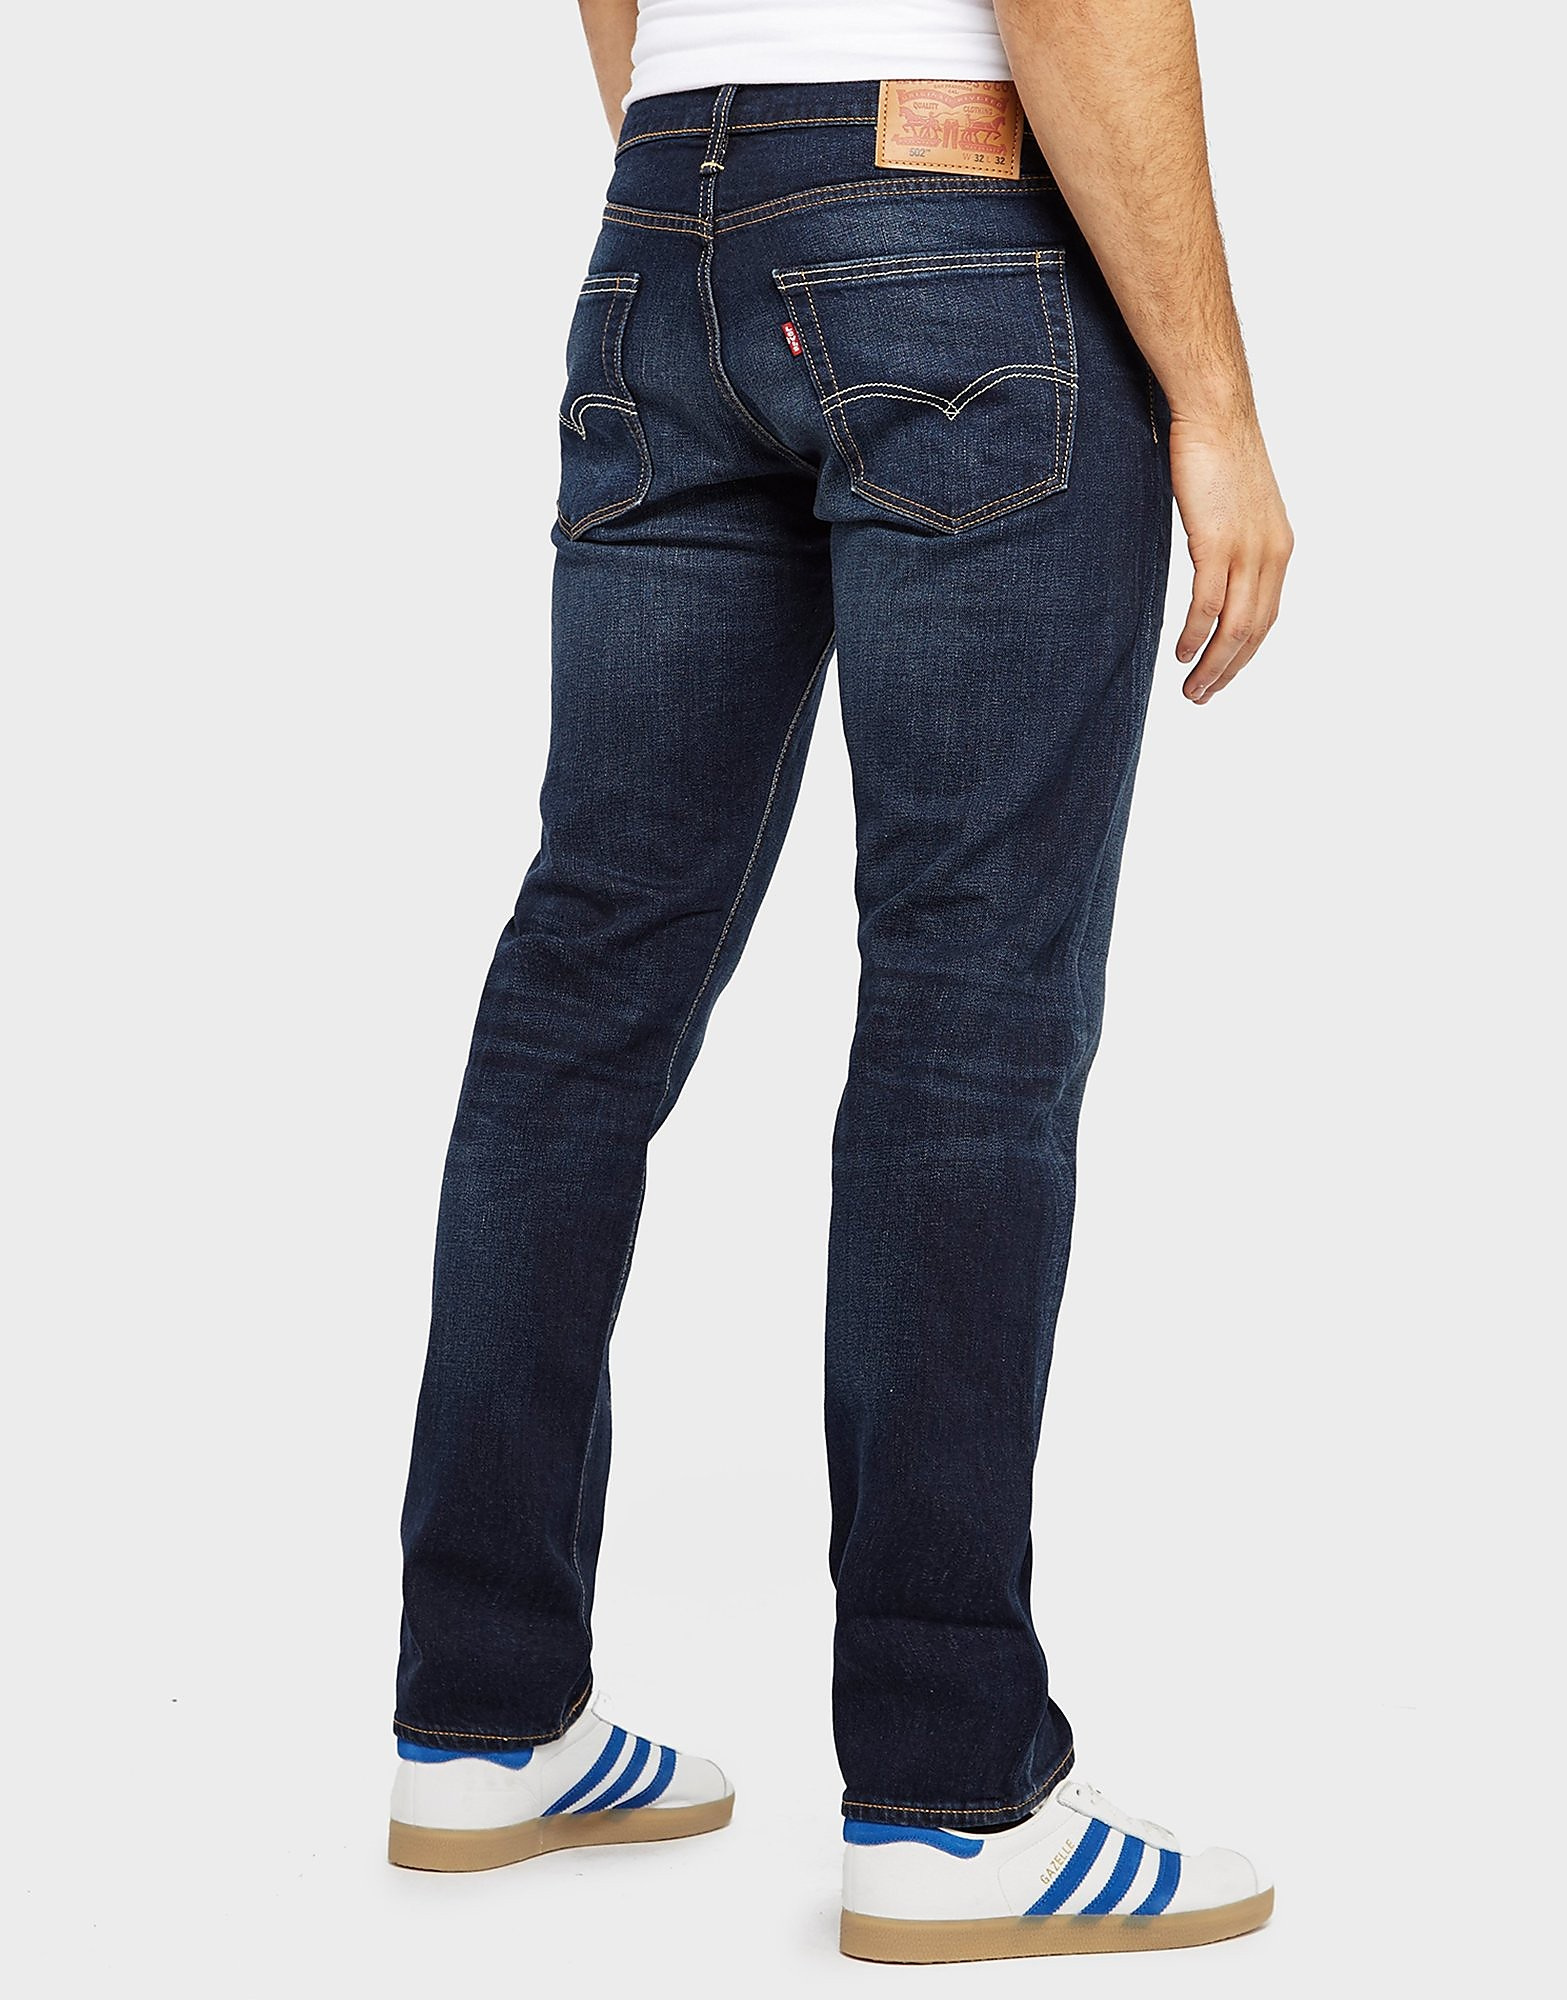 Levis 502 Regular Taper Jean